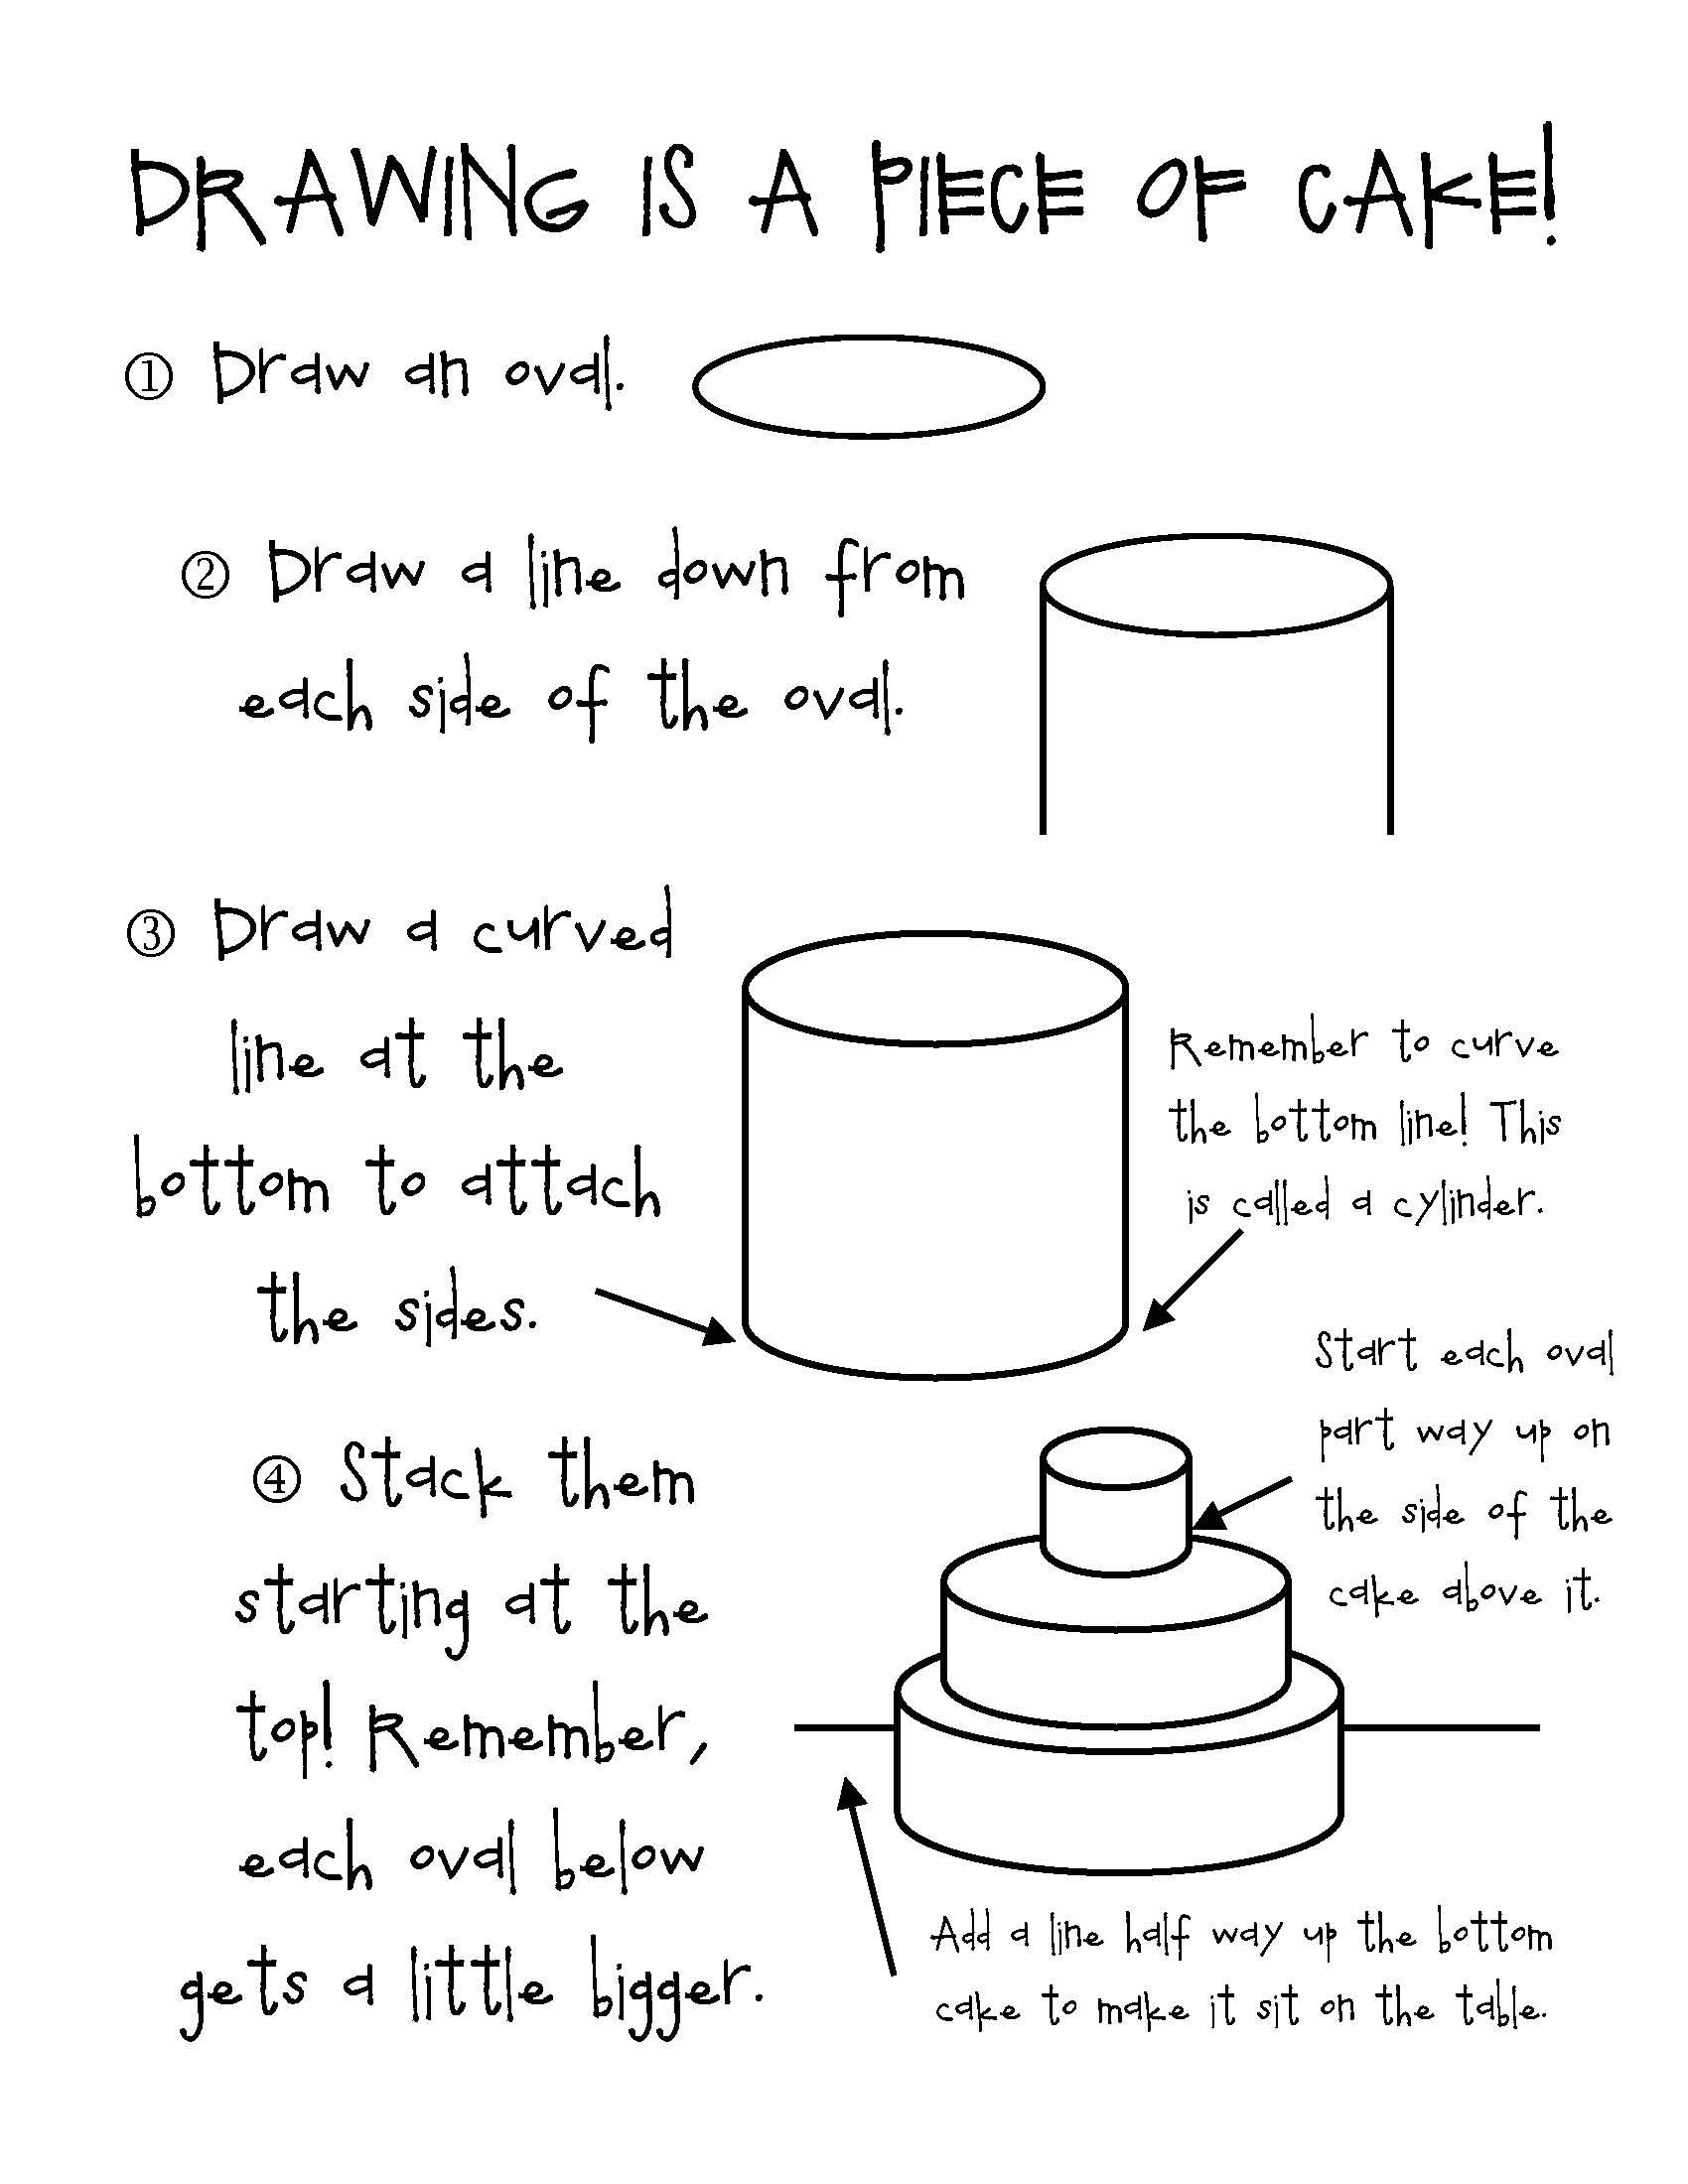 Drawing is a piece of cake! | Thiebaud art lessons | Pinterest ... for Drawing Cake Step Step  579cpg